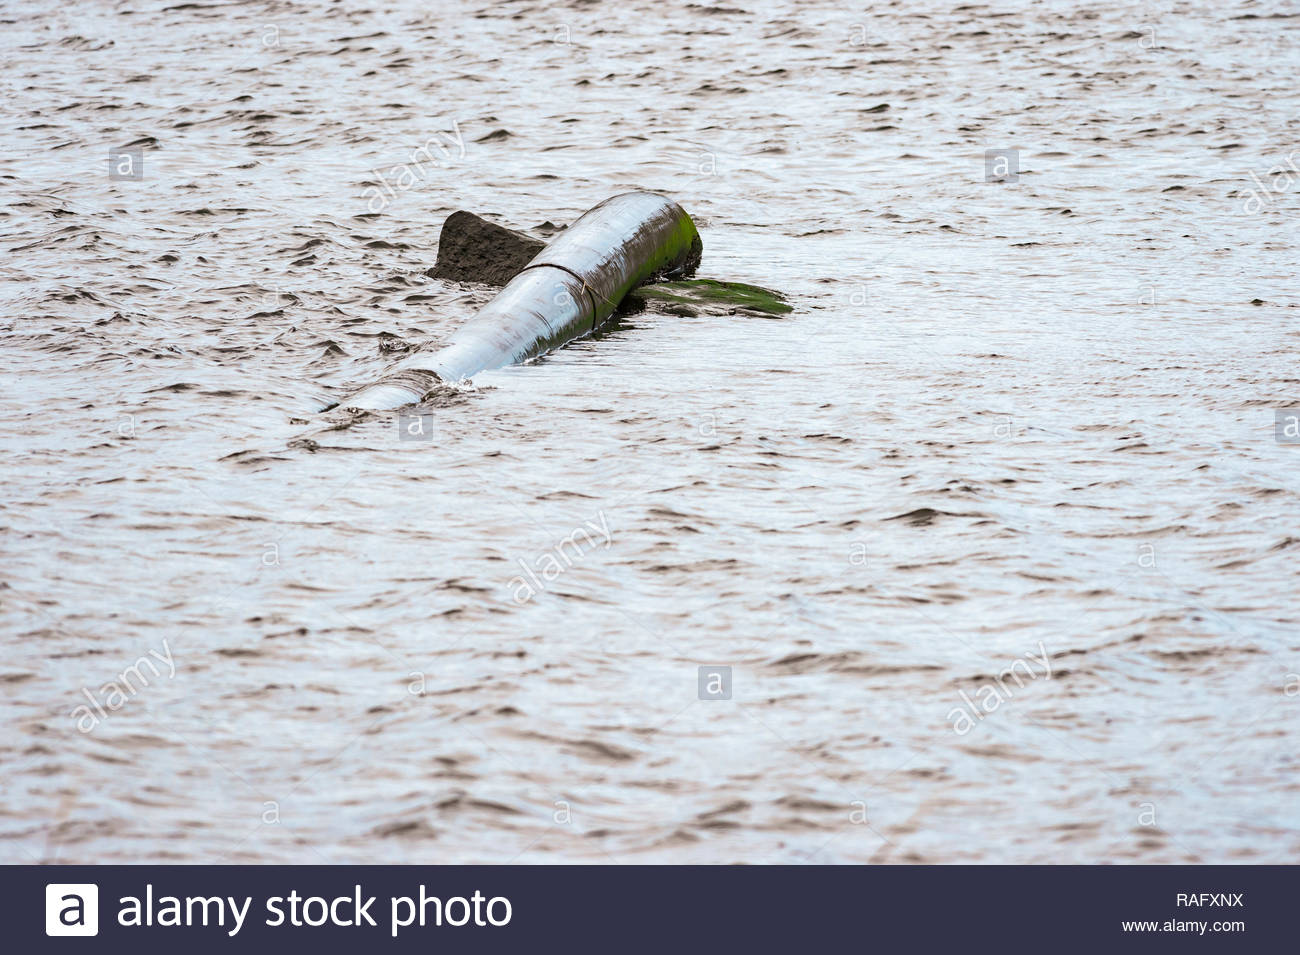 Pipe wedged between two rocks appears to be a sea creature swimming on the surface - Stock Image